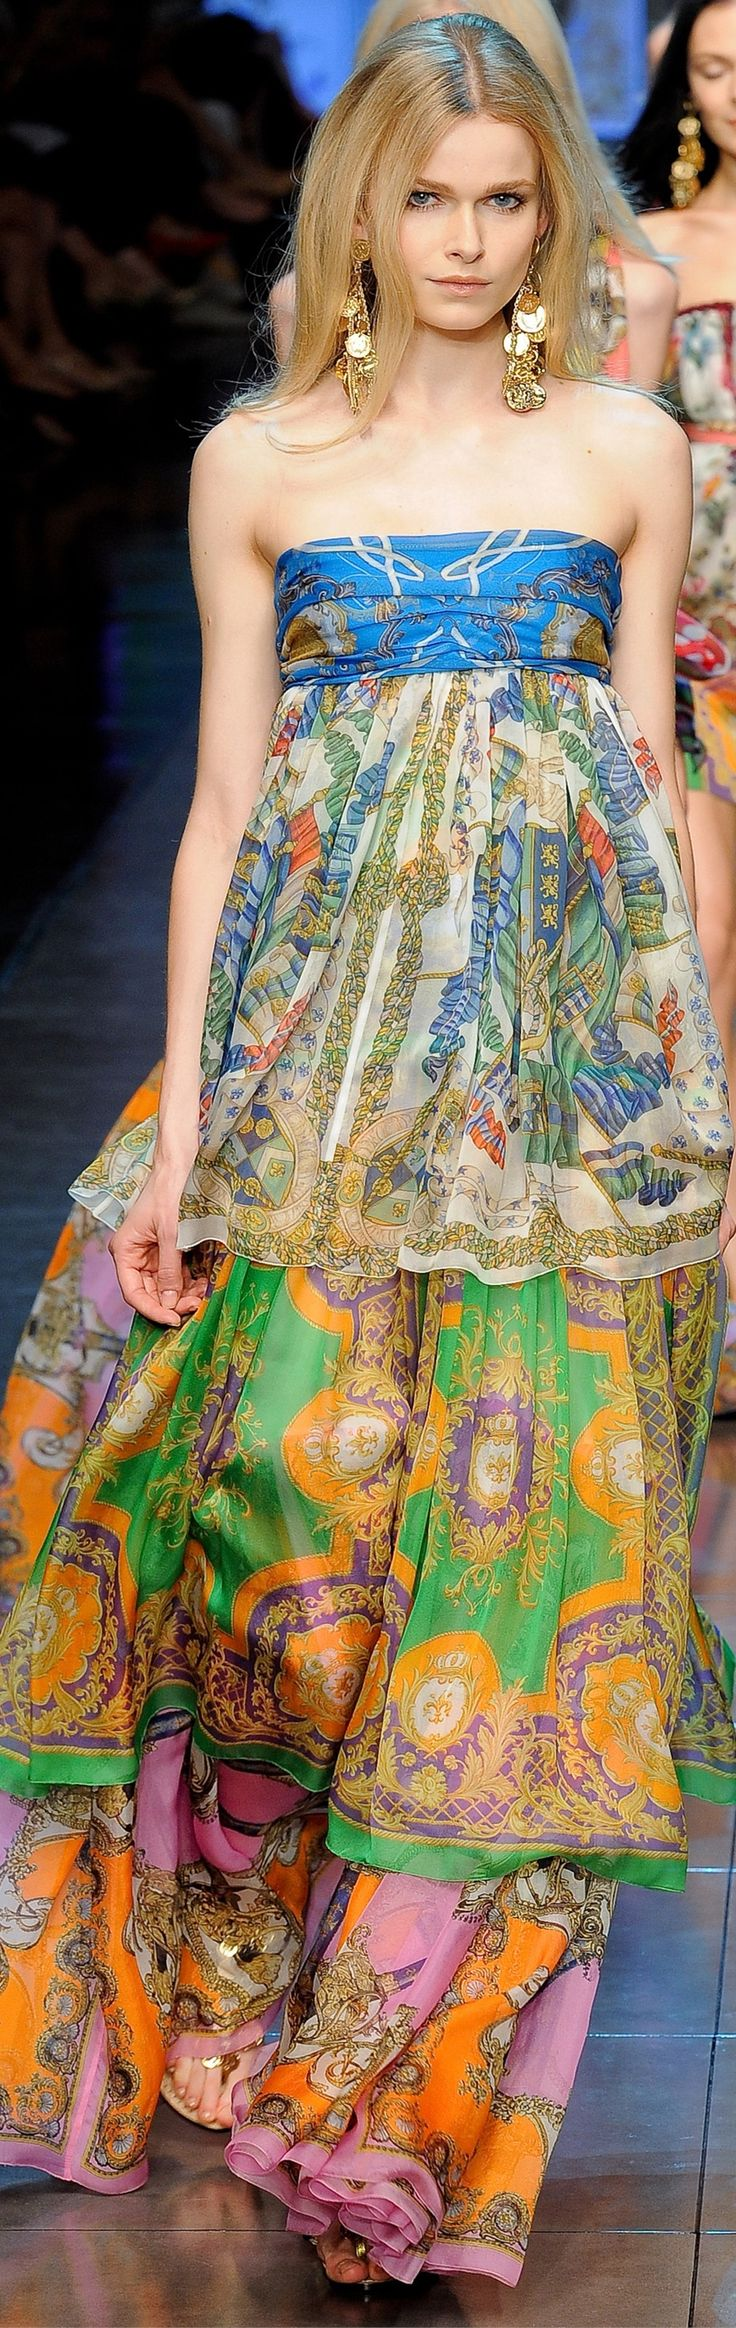 best couture spring images on pinterest high fashion dream